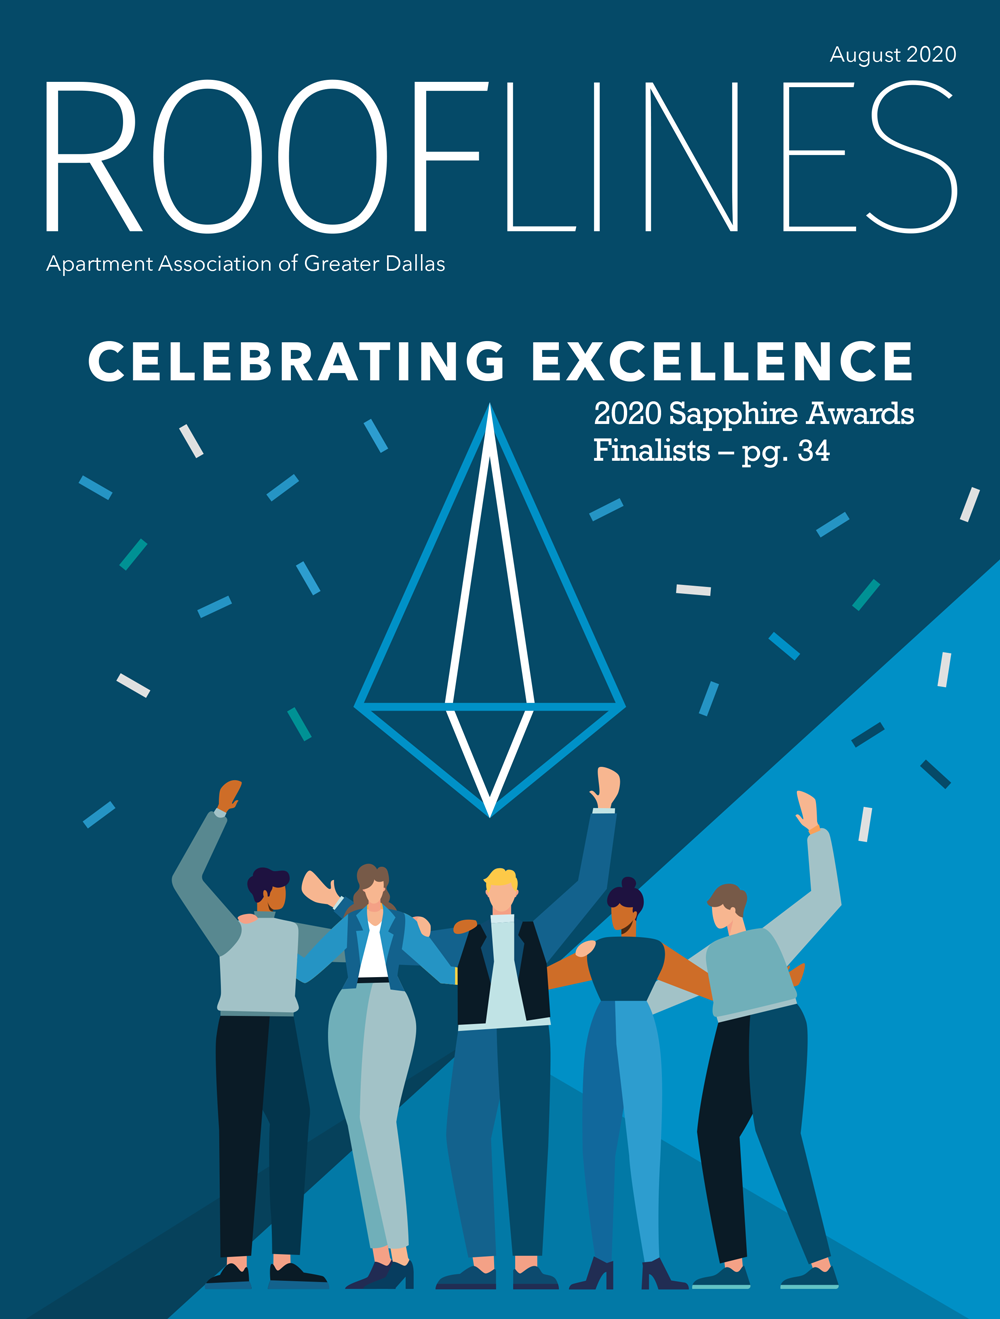 August 2020 Rooflines Cover